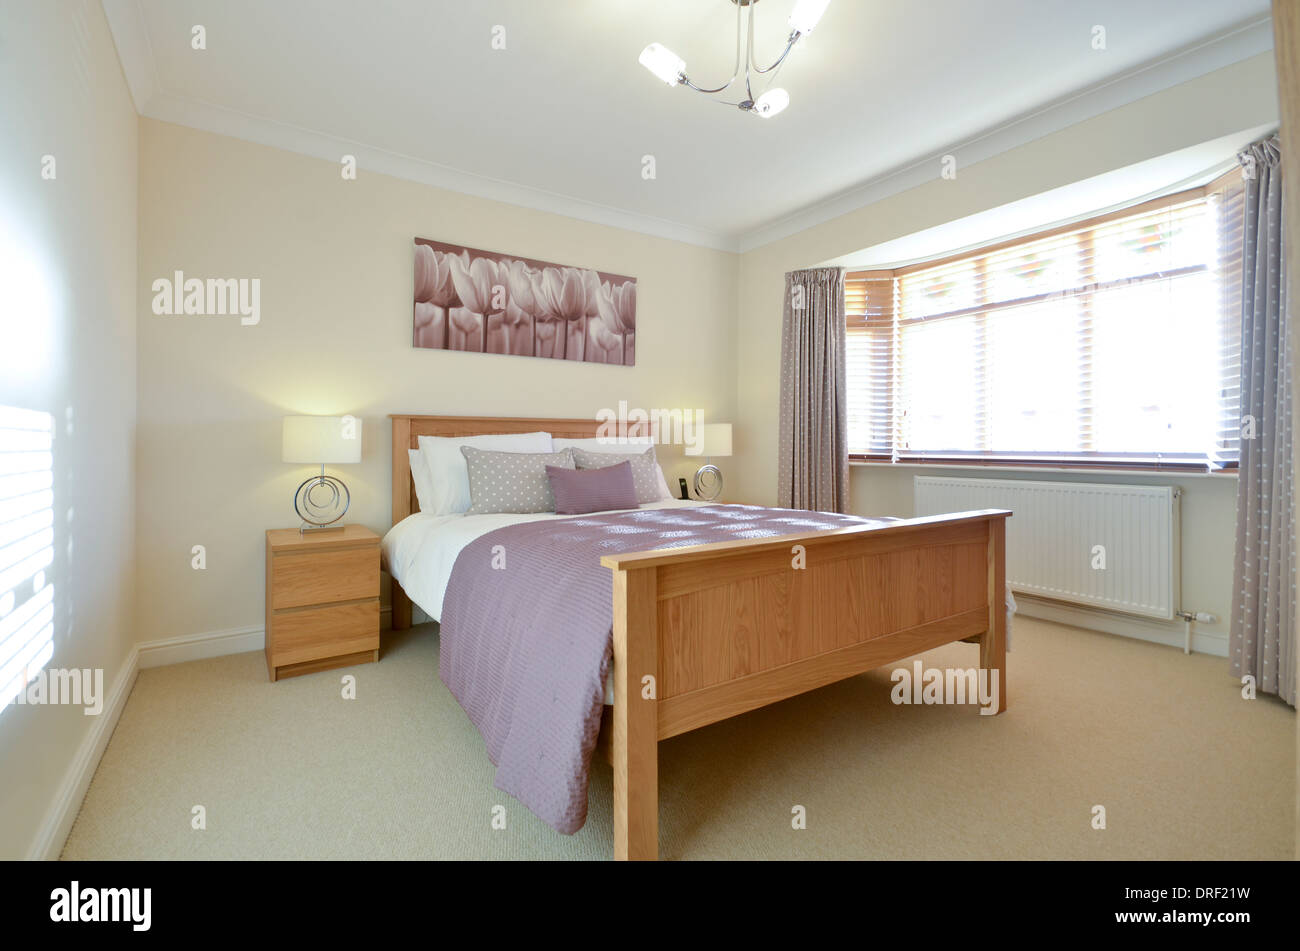 stylish modern spare bedroom with double bed - Stock Image